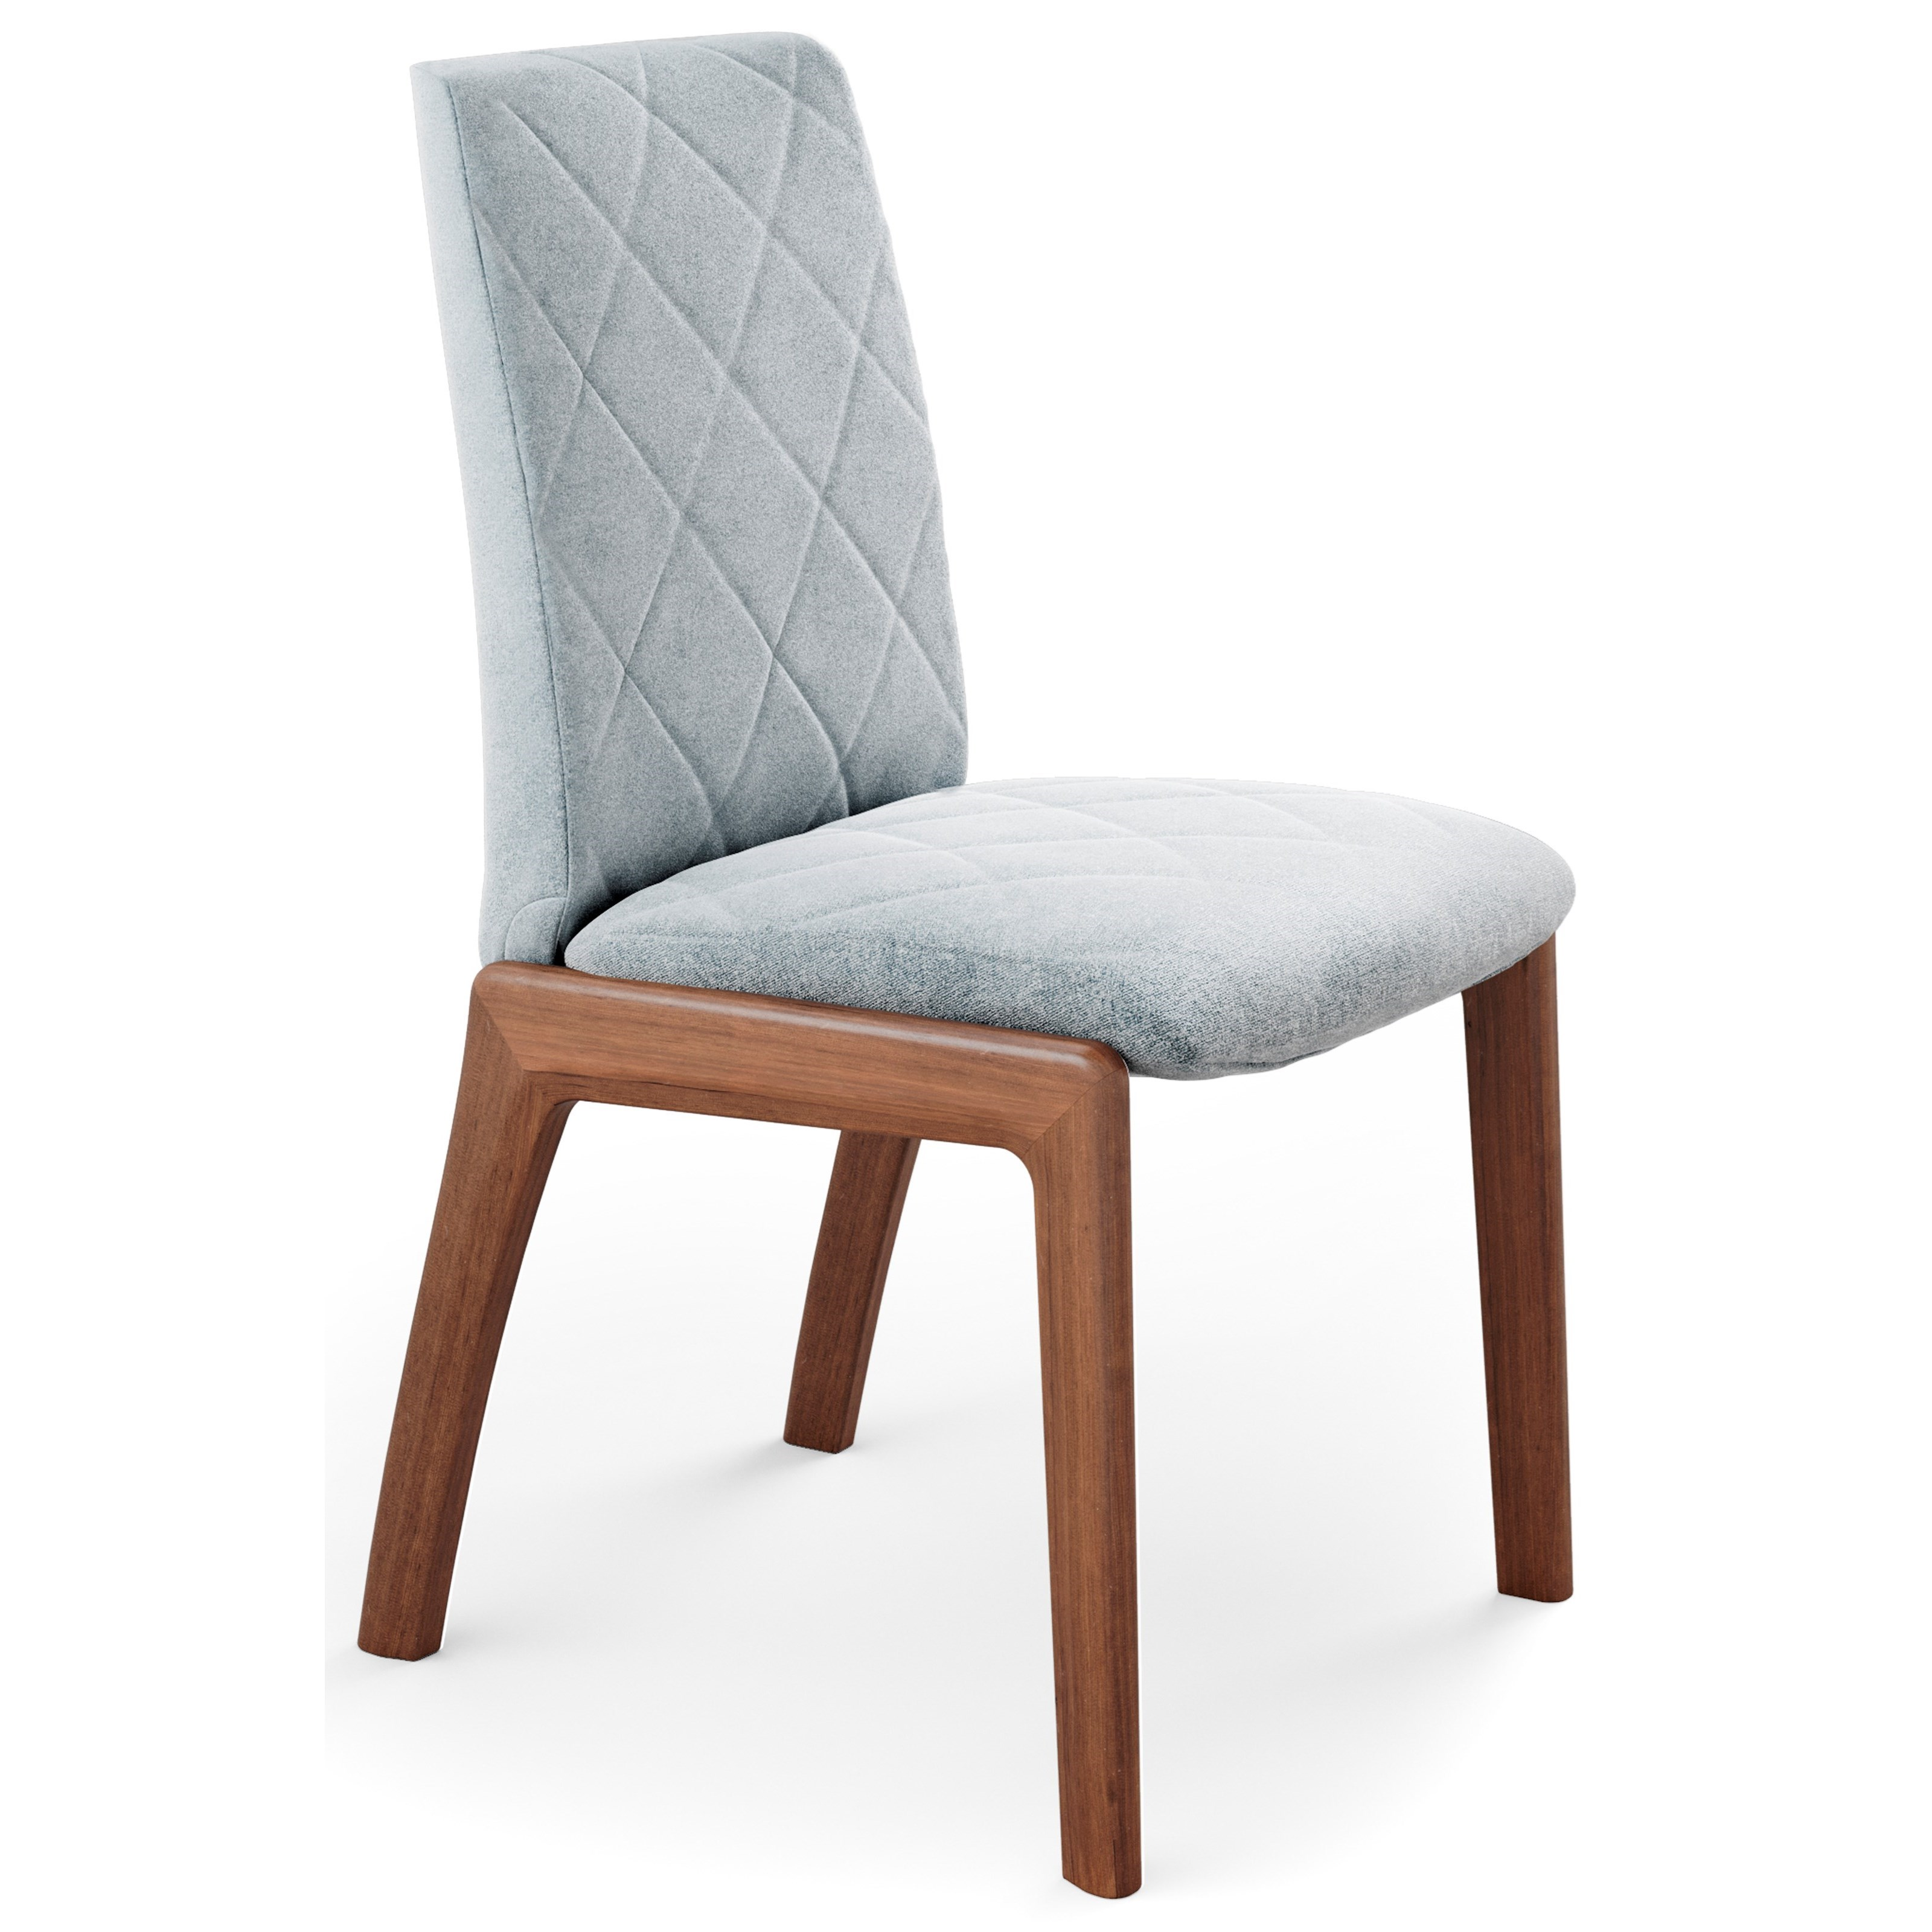 Stressless mango reclining low back dining chair item number 1852751